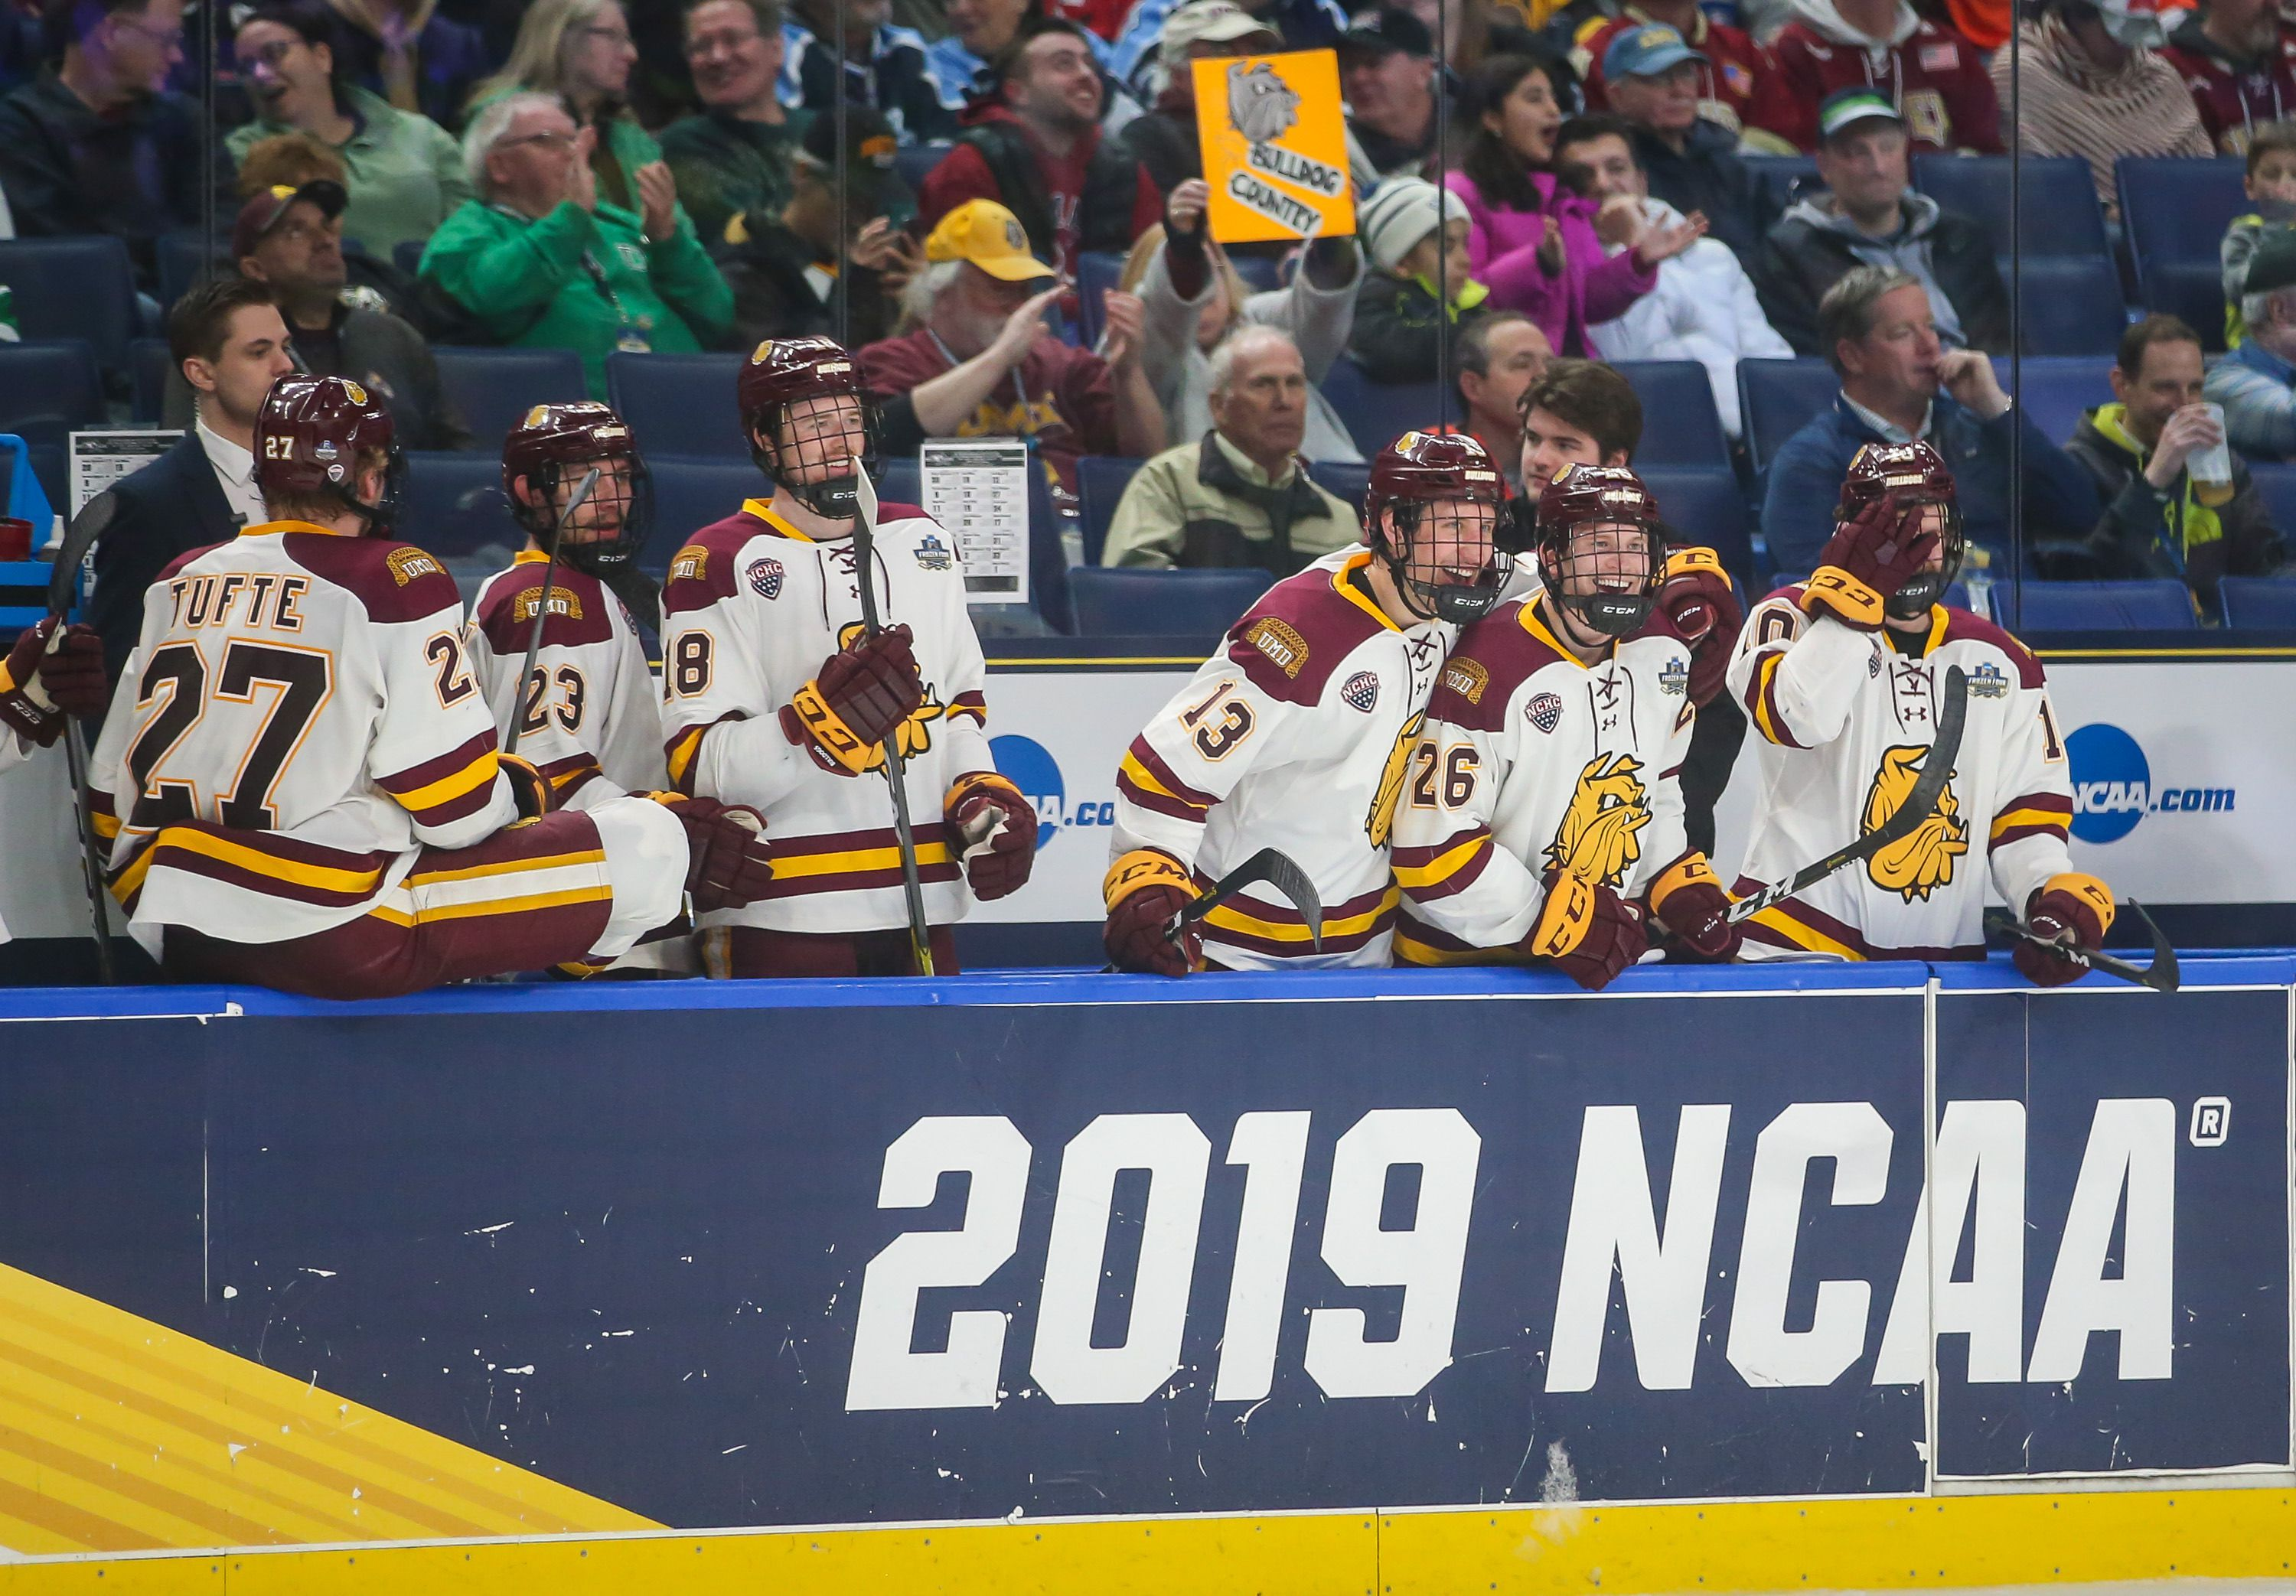 Minnesota Duluth's bench celebrates their victory